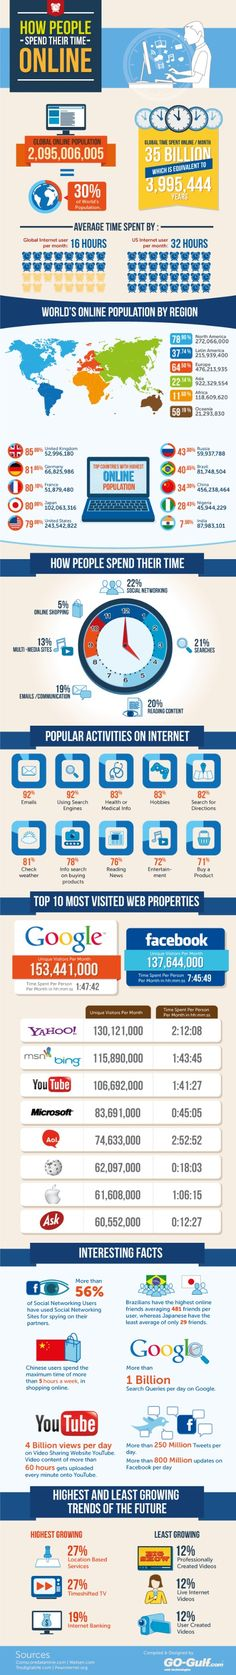 Infographic - How surfers spend their time online